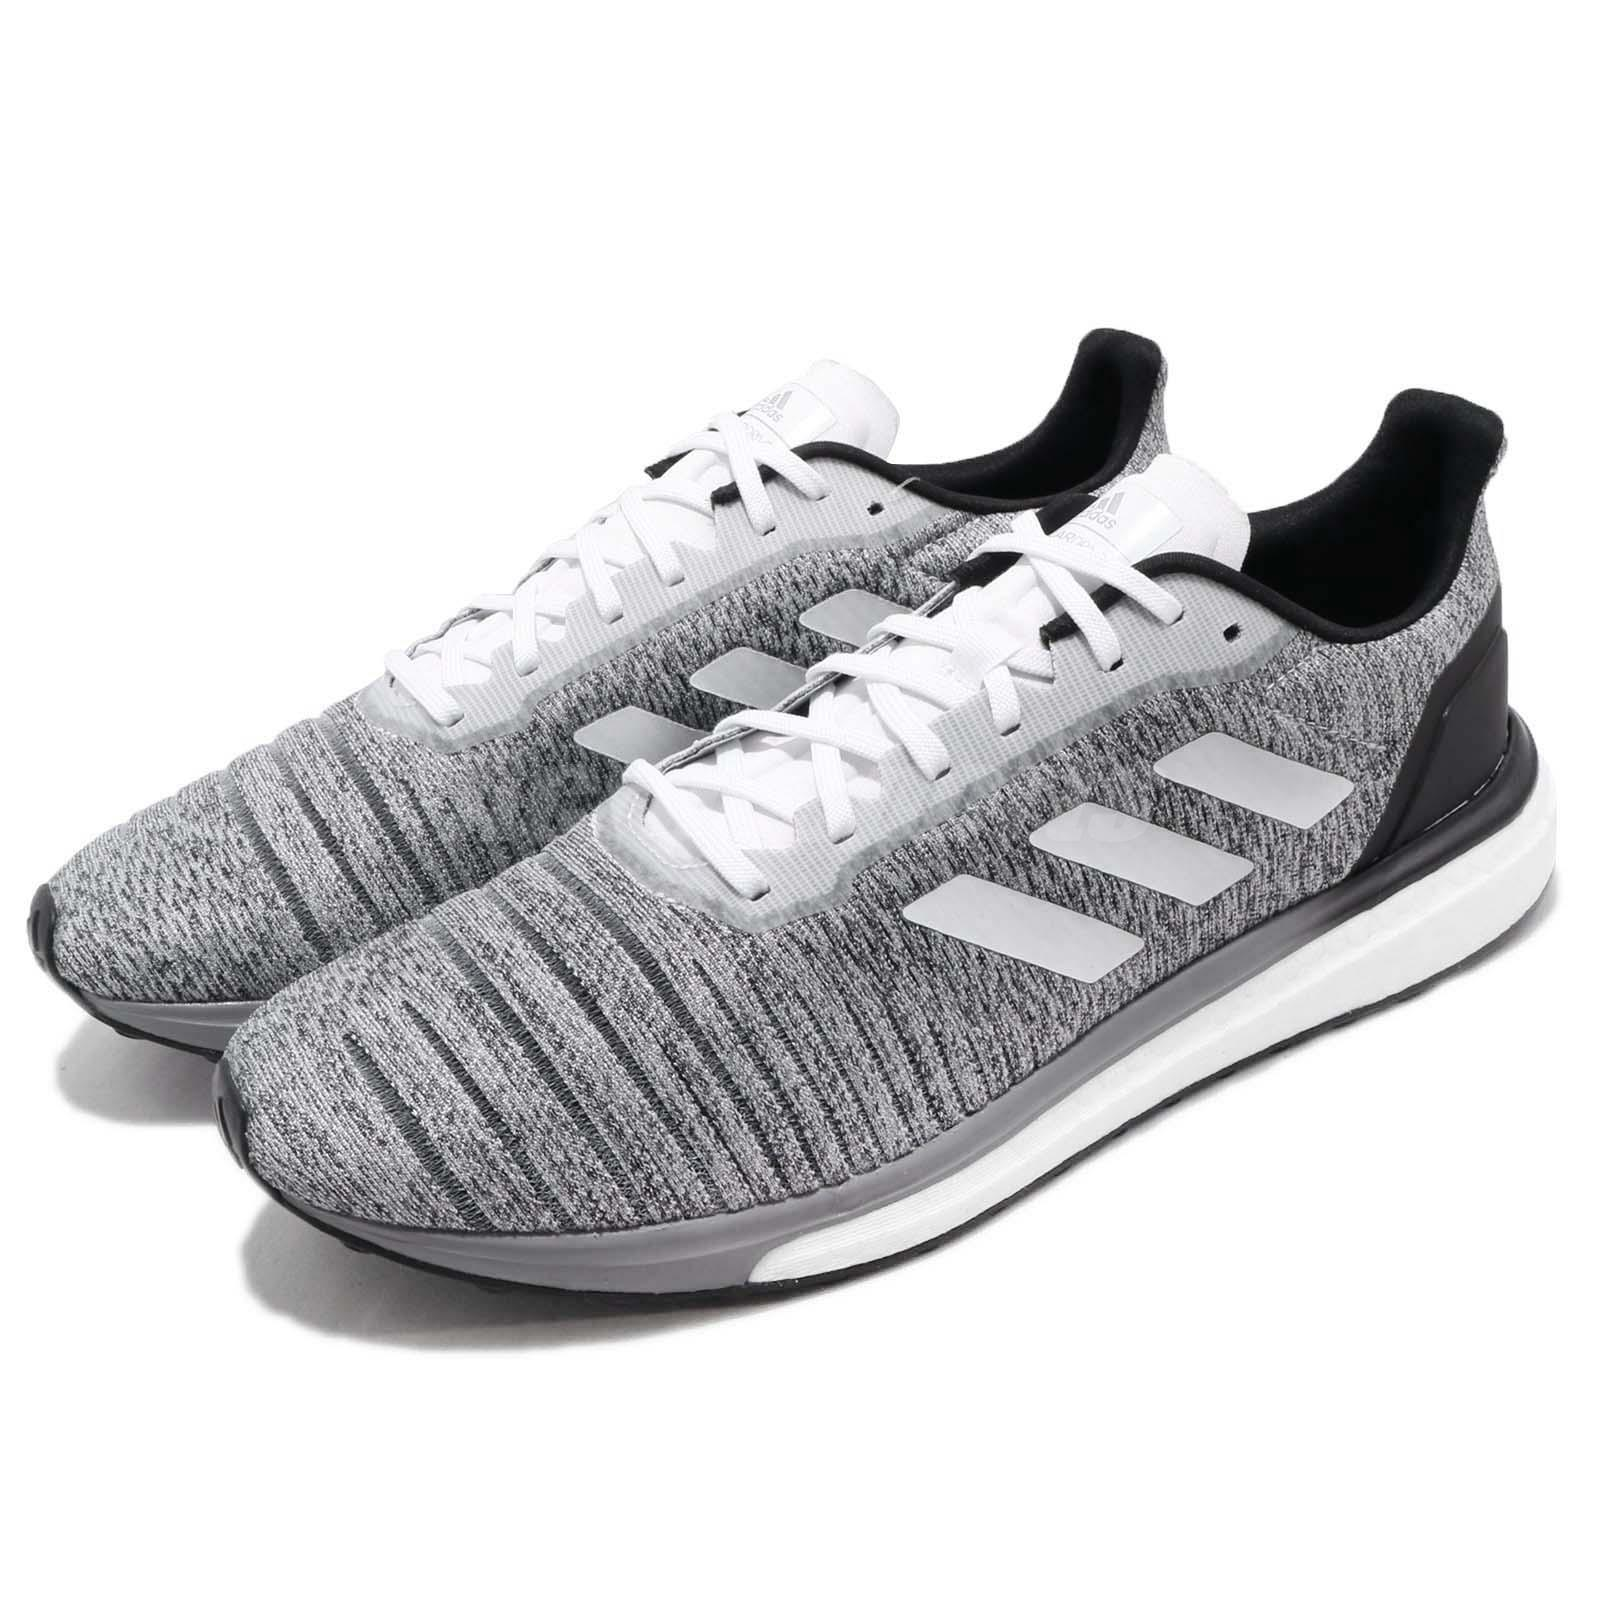 Details about adidas Solar Drive M Boost Grey White Black Men Running Shoes Sneakers AQ0337